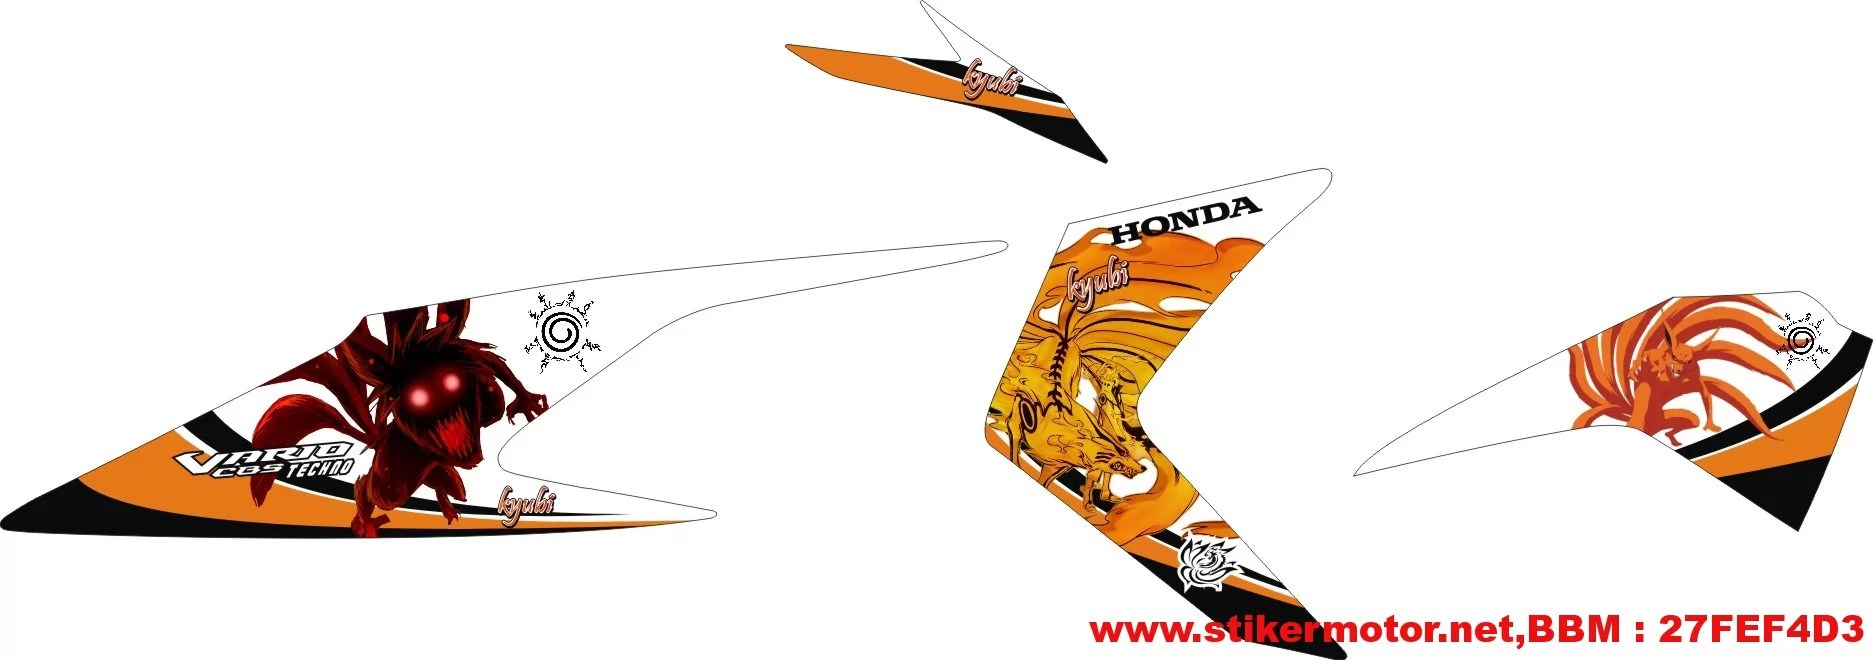 Striping modifikasi honda vartech naruto